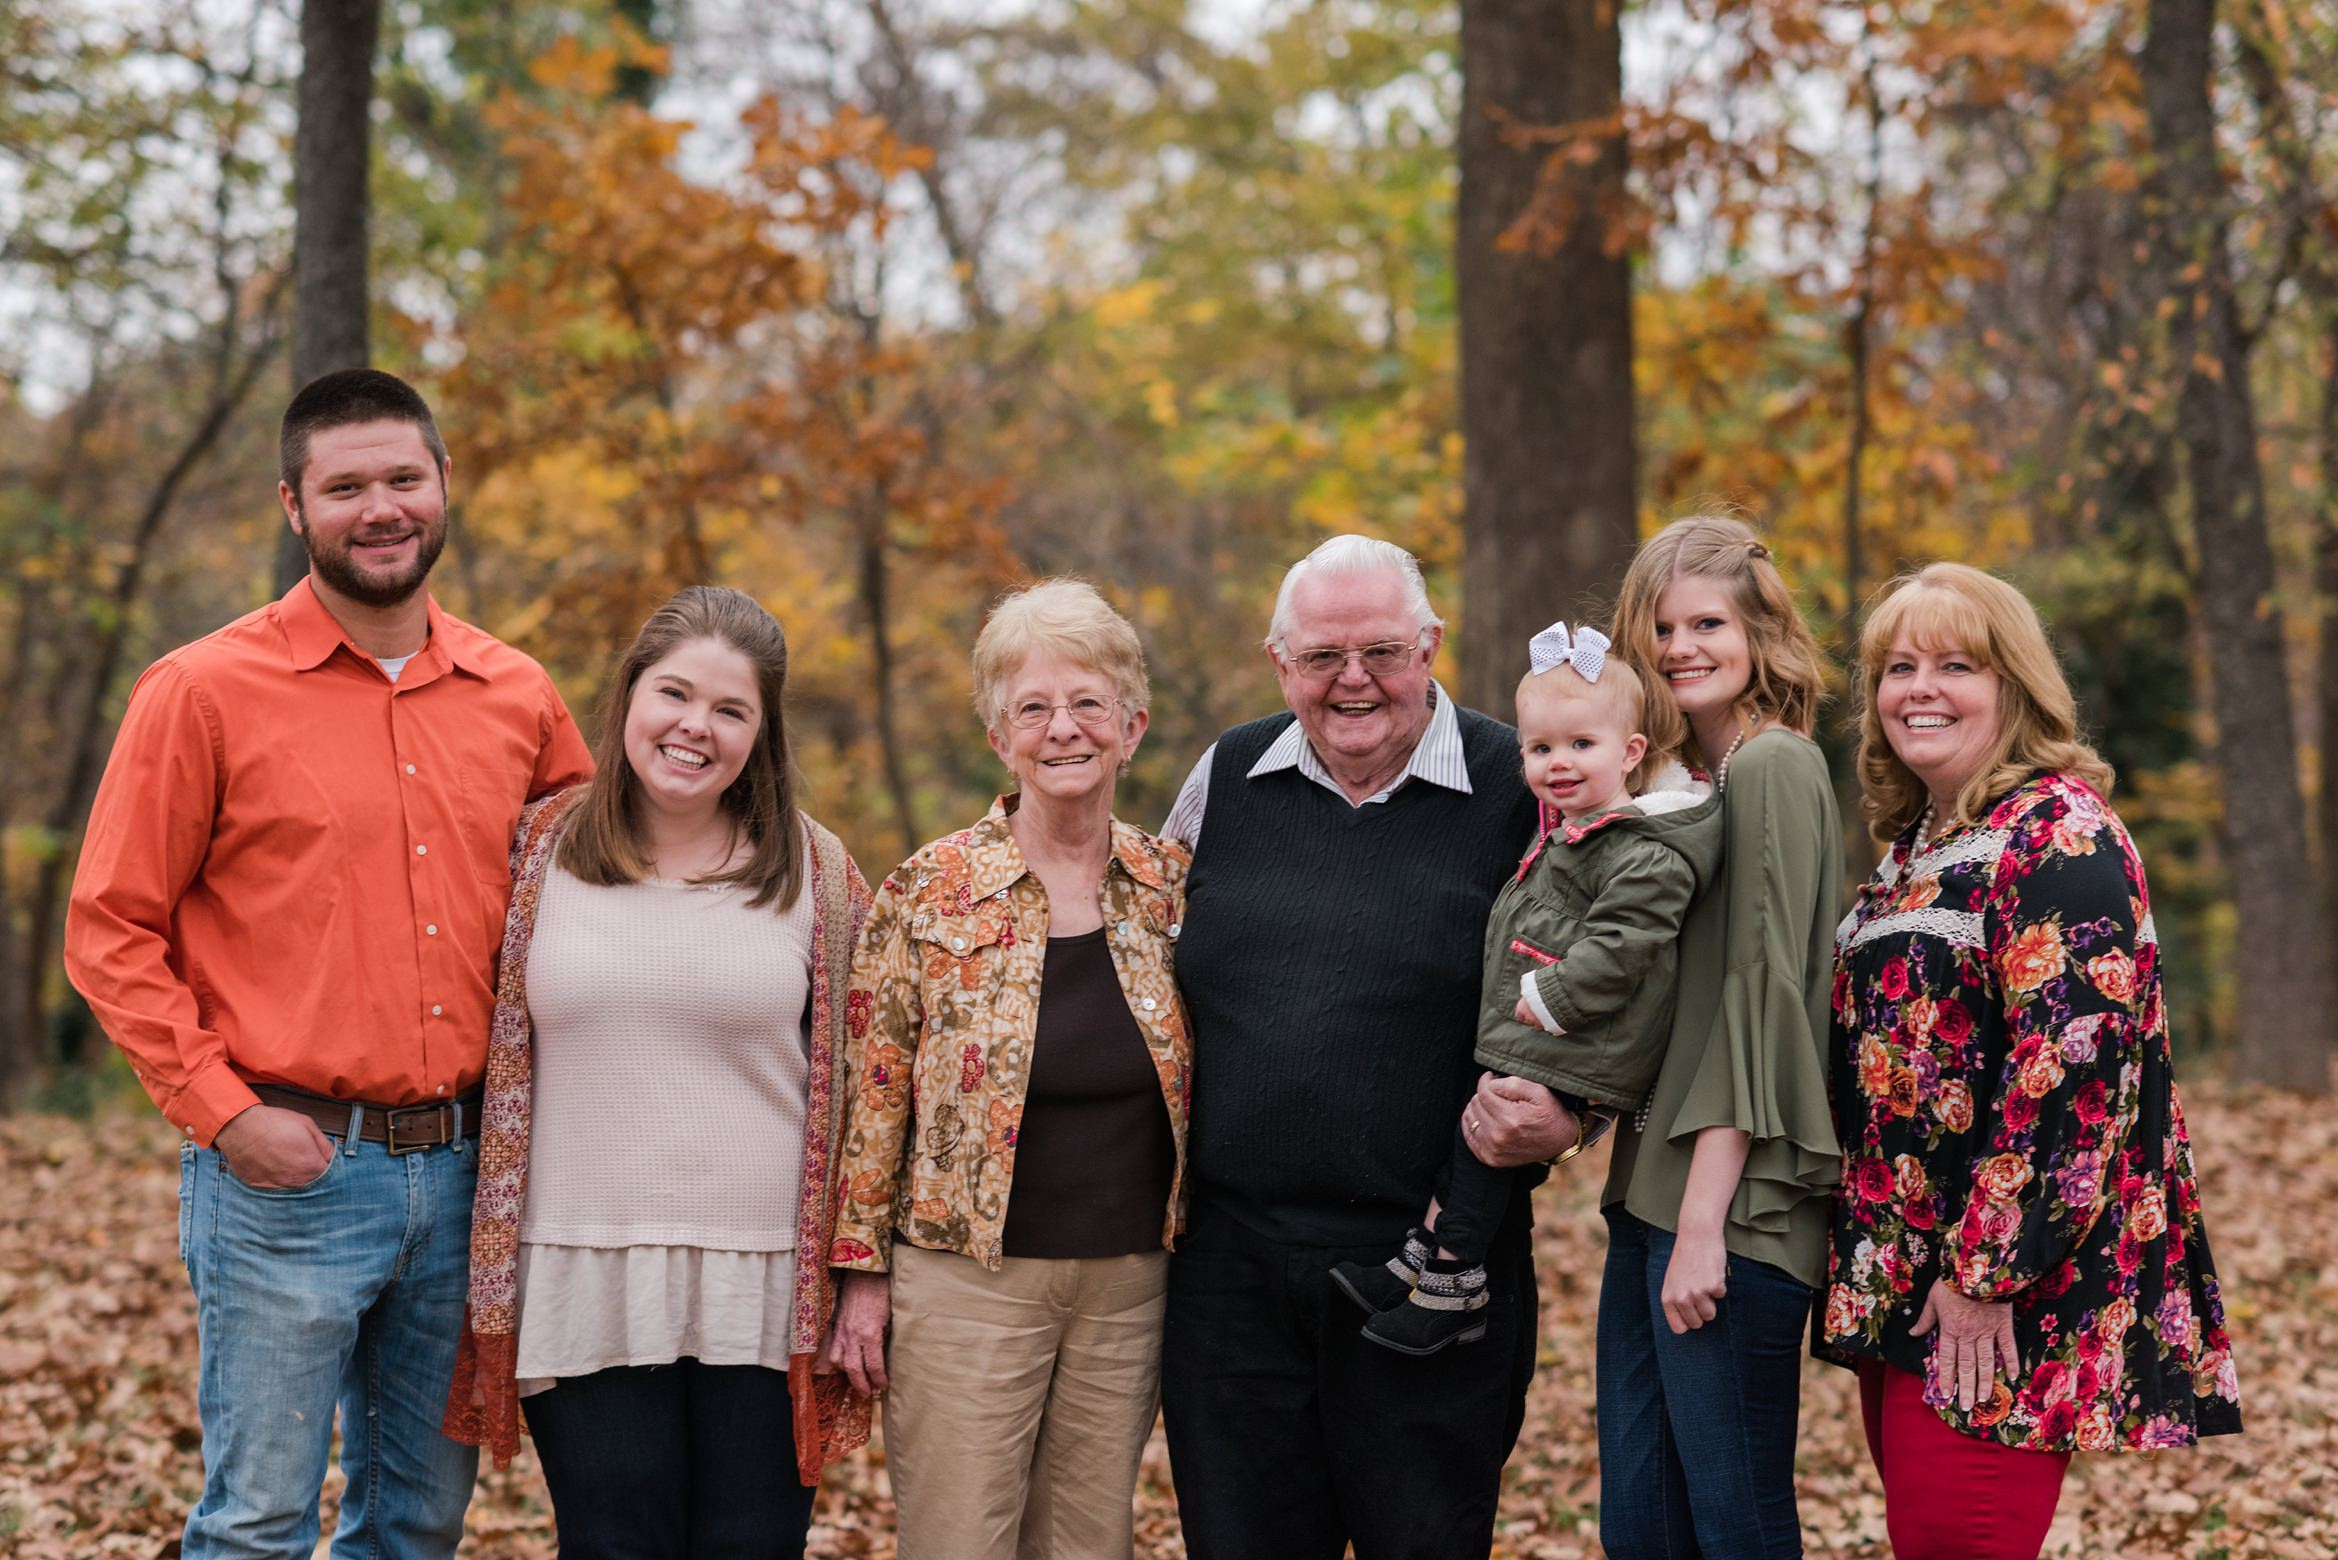 McGarrah Family Photos in Siloam Springs, AR